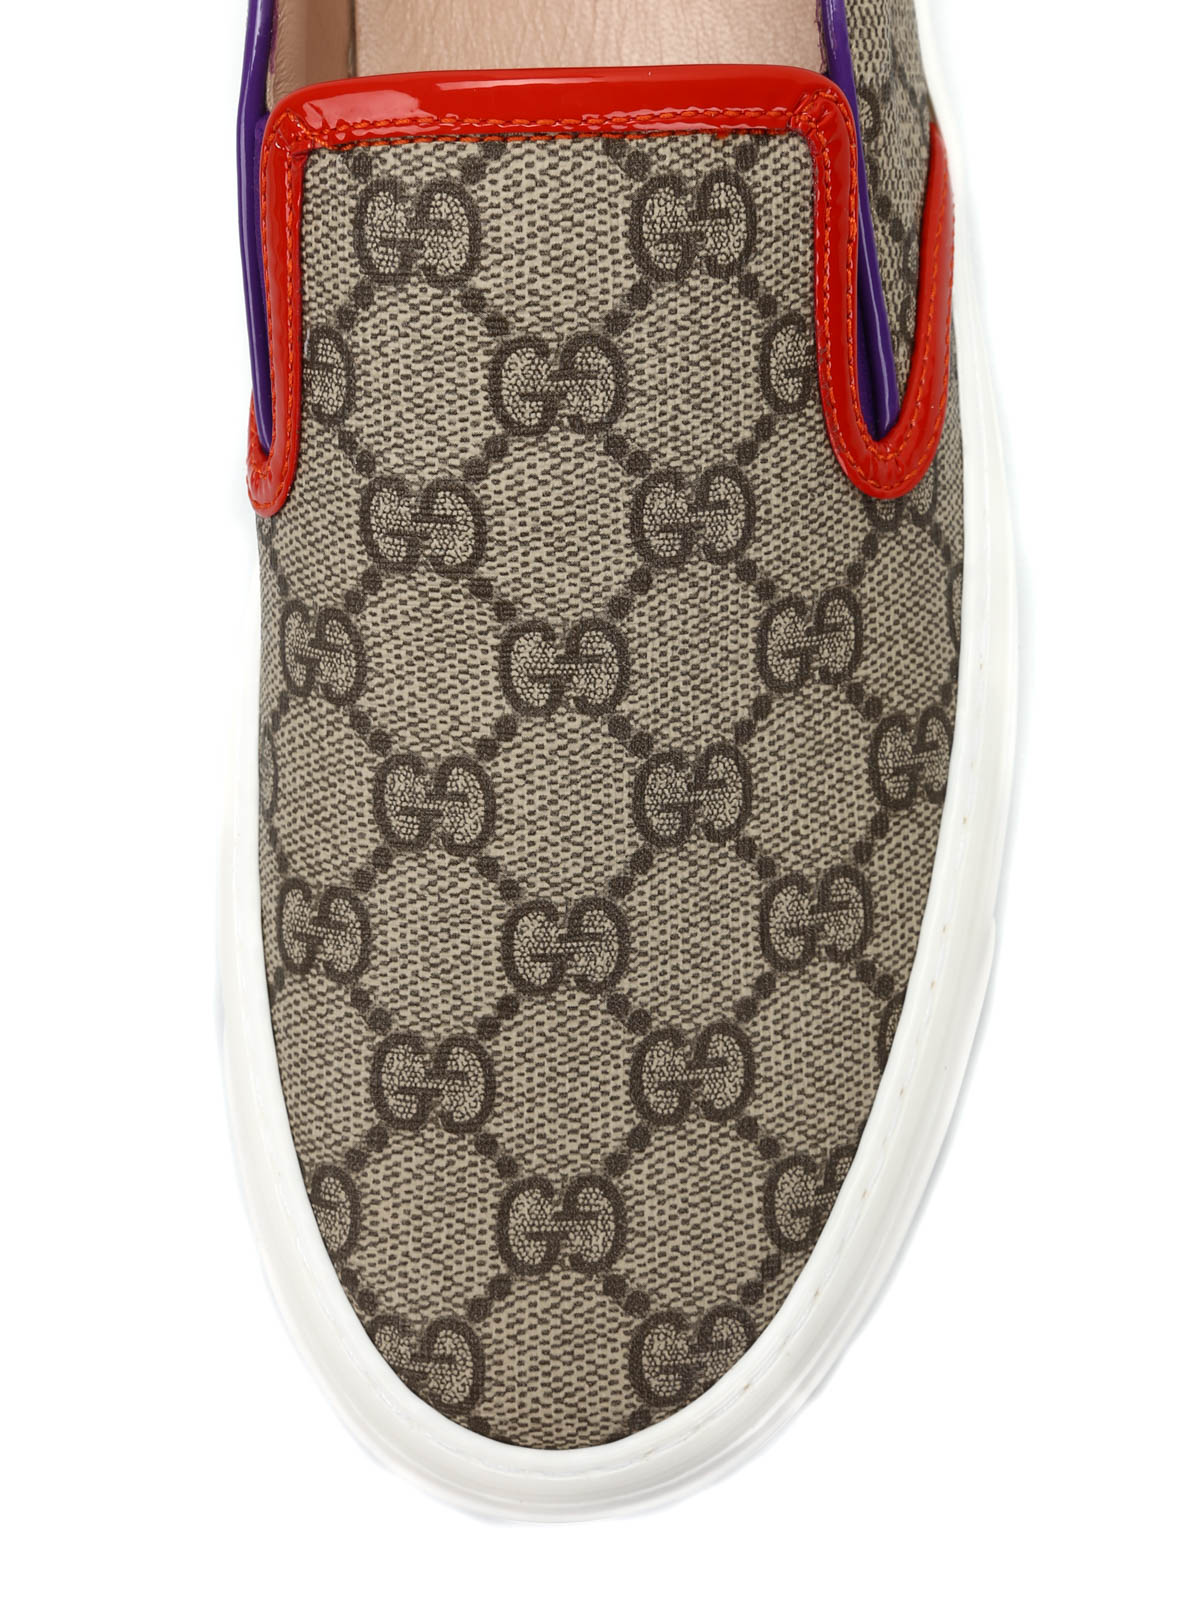 61795ff5acd Gucci - GG slip-on sneakers - Loafers   Slippers - 408511 KLQO0 9768